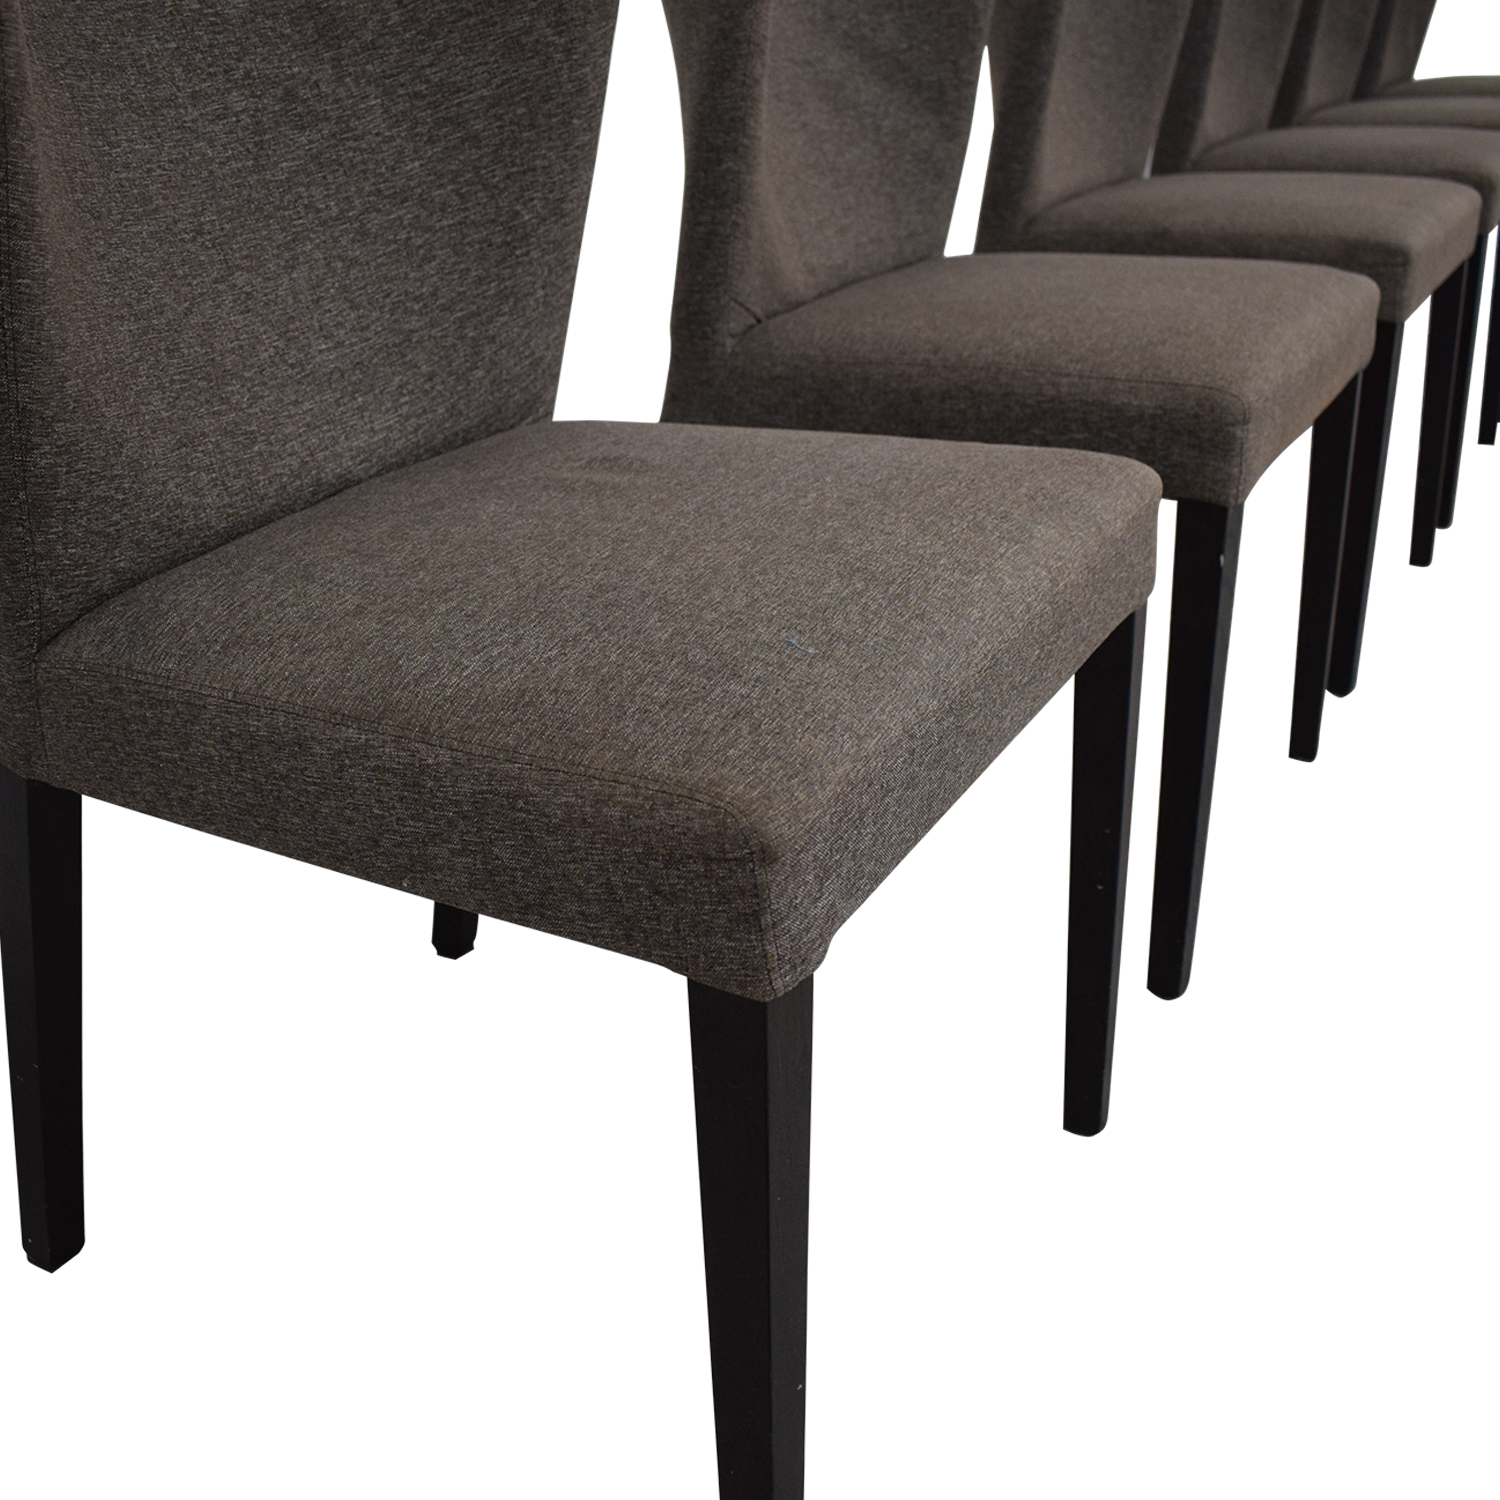 Heal's of London Heals of London Habitat Grey Upholstered Dining Chairs second hand